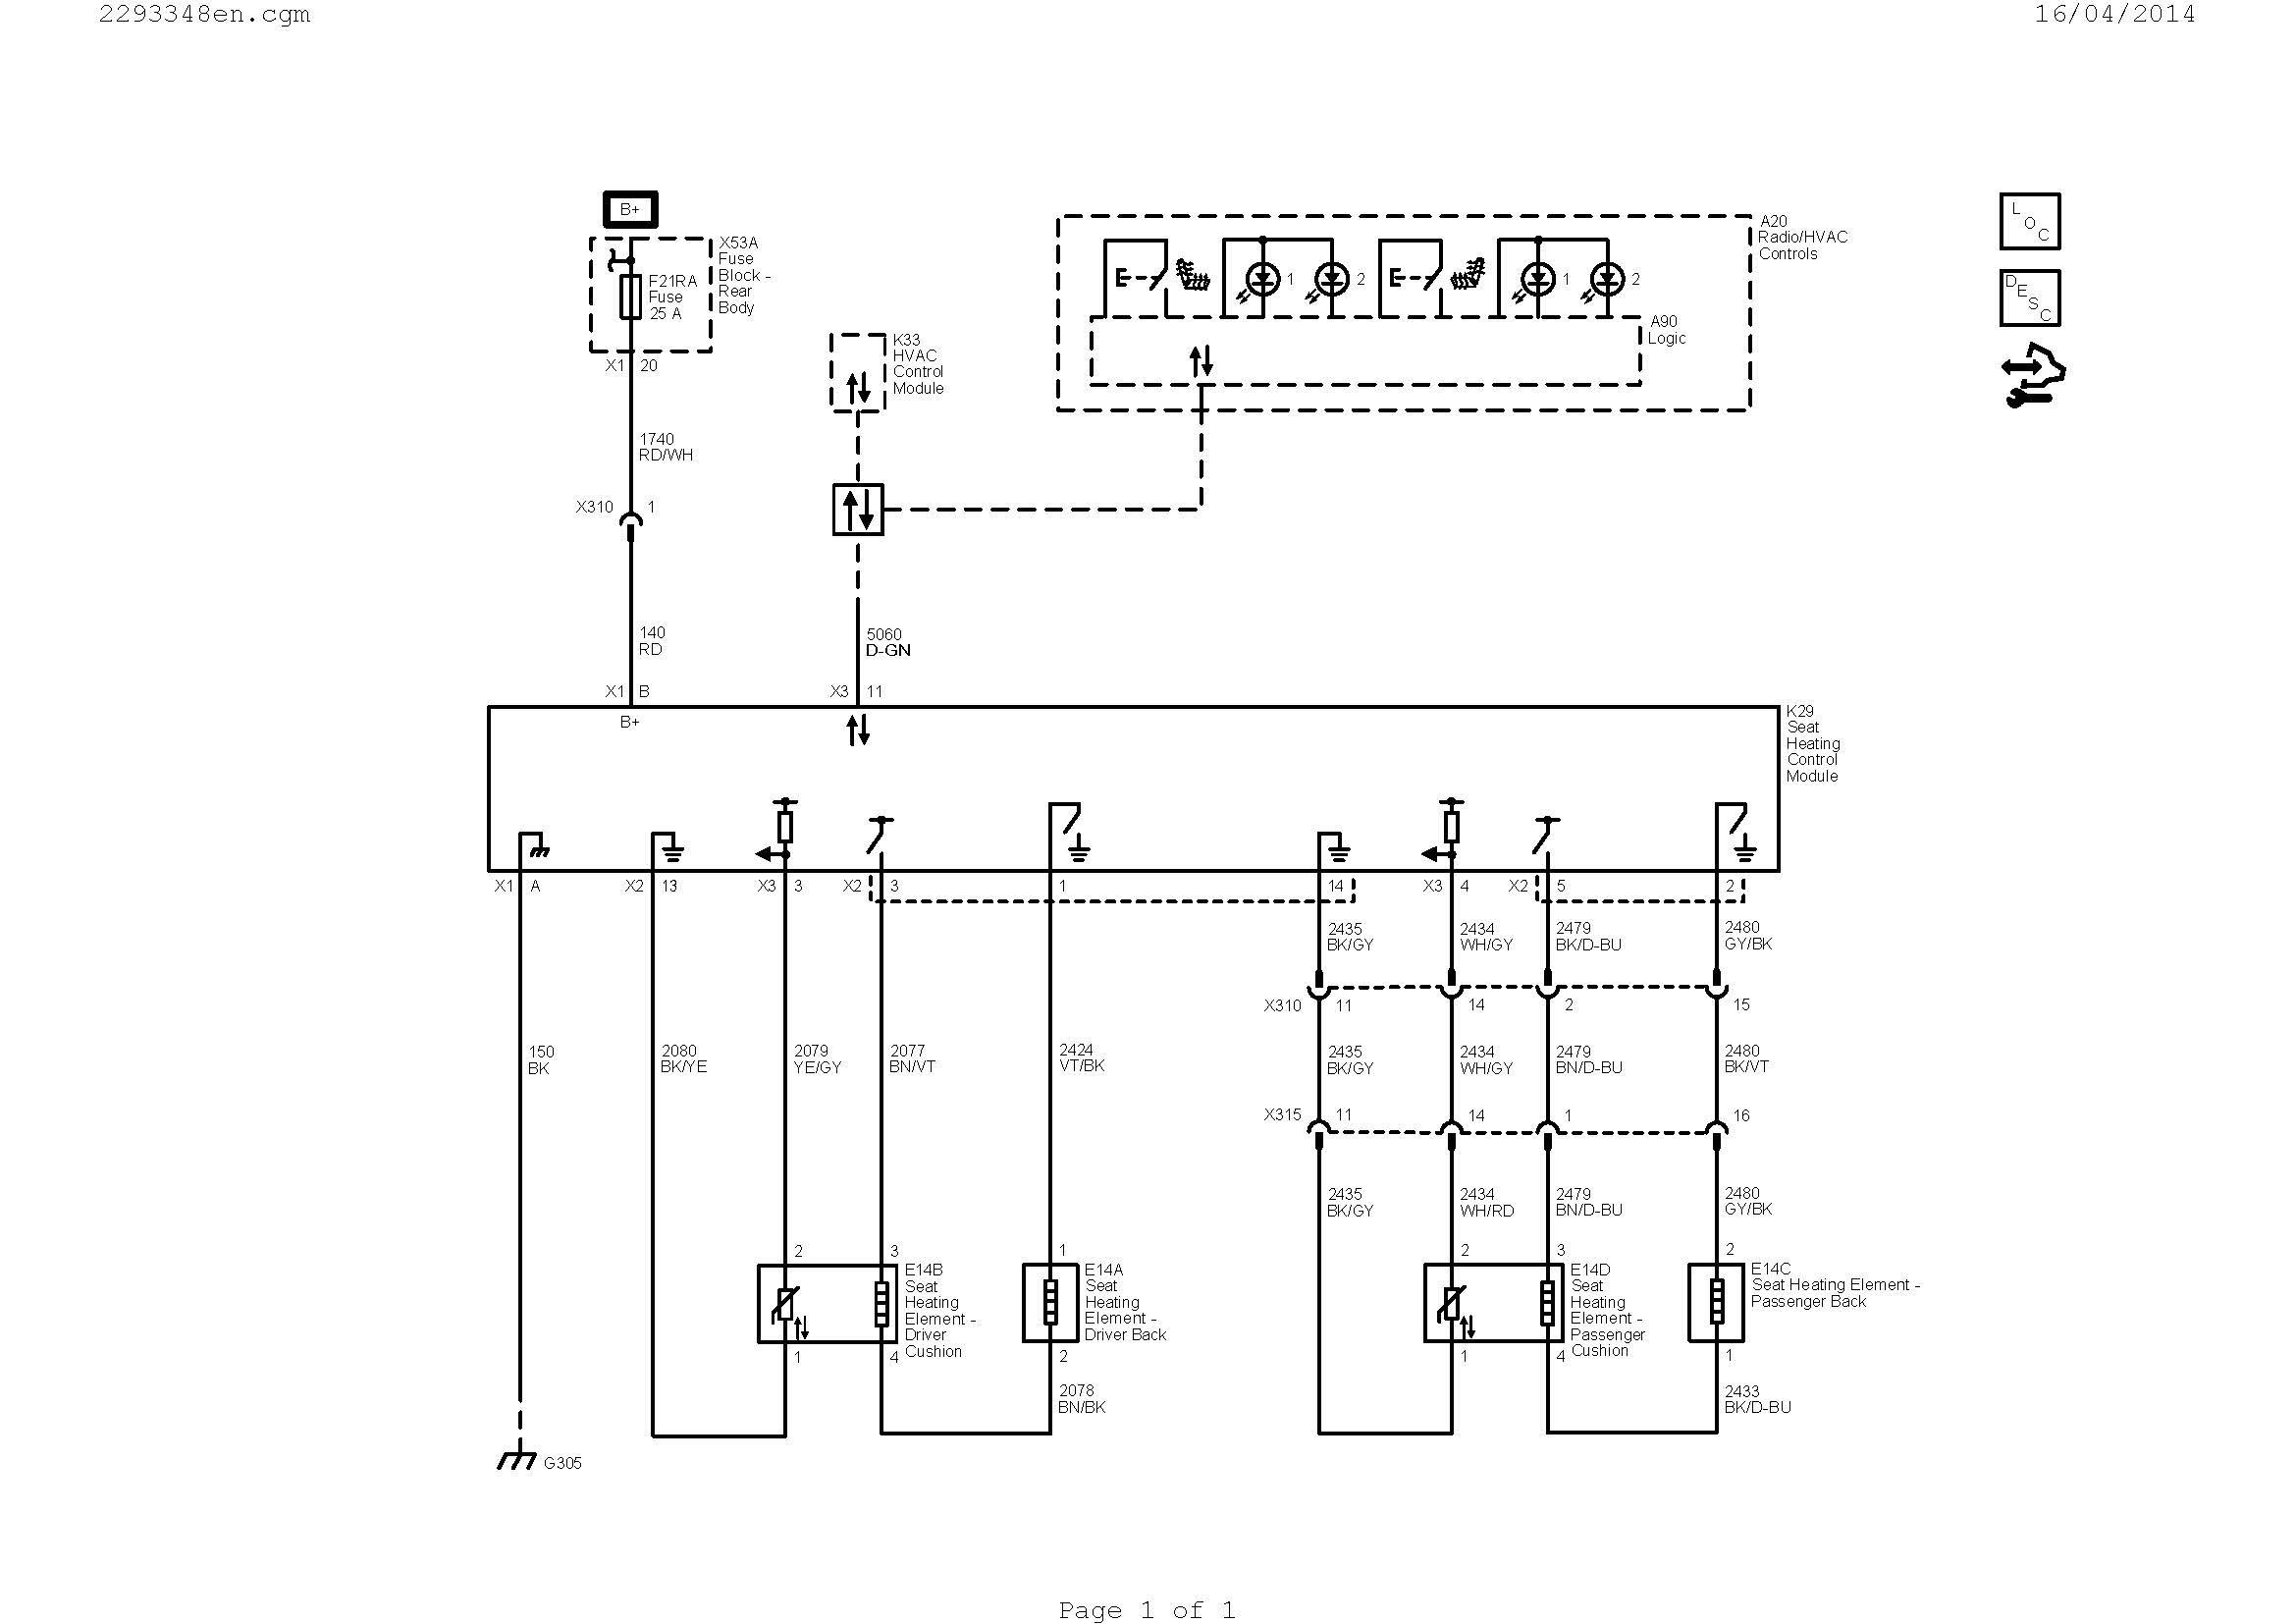 split unit wiring diagram Download-Wiring Diagram Car Valid Wiring Diagram Ac Valid Hvac Diagram Best Hvac Diagram 0d – Wire 12-a